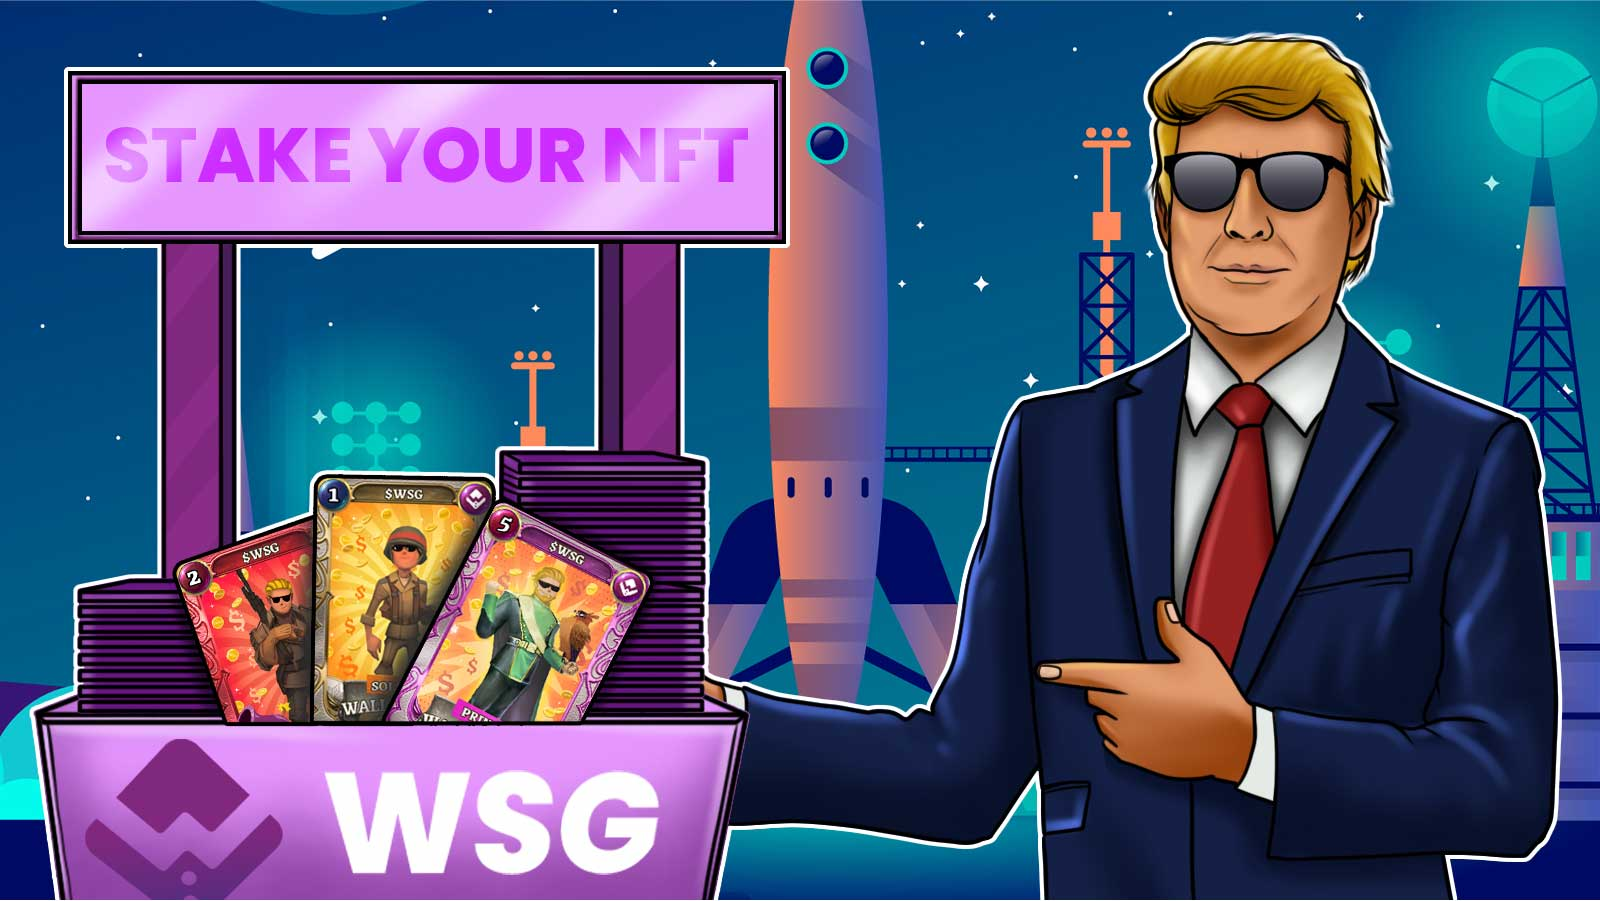 Wall Street Games Launches NFT Card Staking for Yield Farmers and Collecters